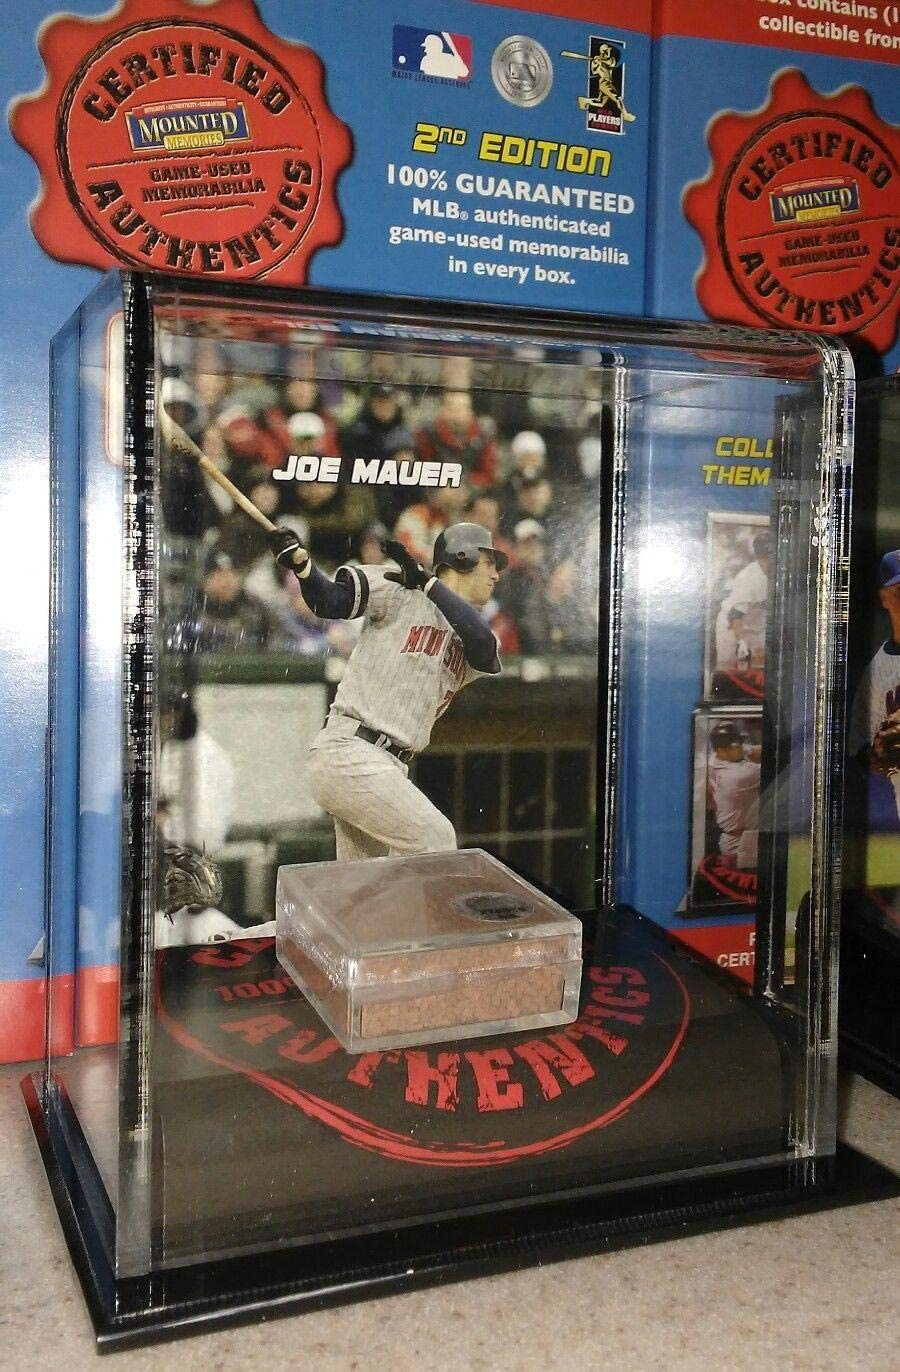 Joe Mauer Minnesota Twins 2007 Mounted Memories Game Used Dirt Display Case - Baseball Other Display Cases